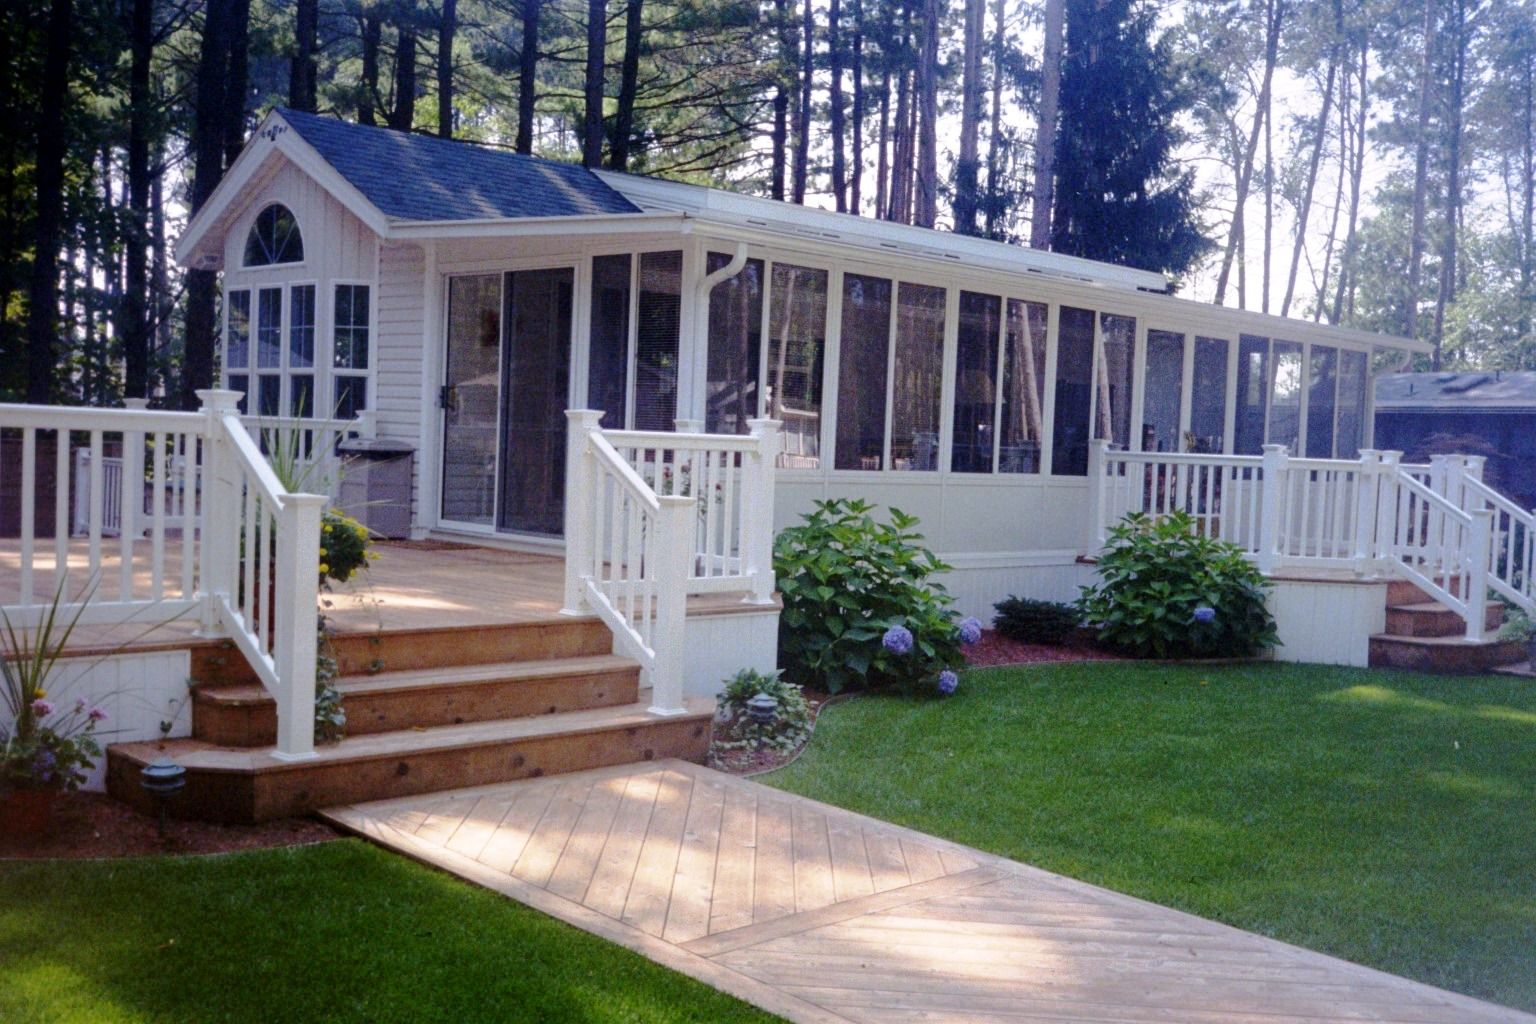 Design mobile home porch ideas mobile home living for Mobile home plans with porches